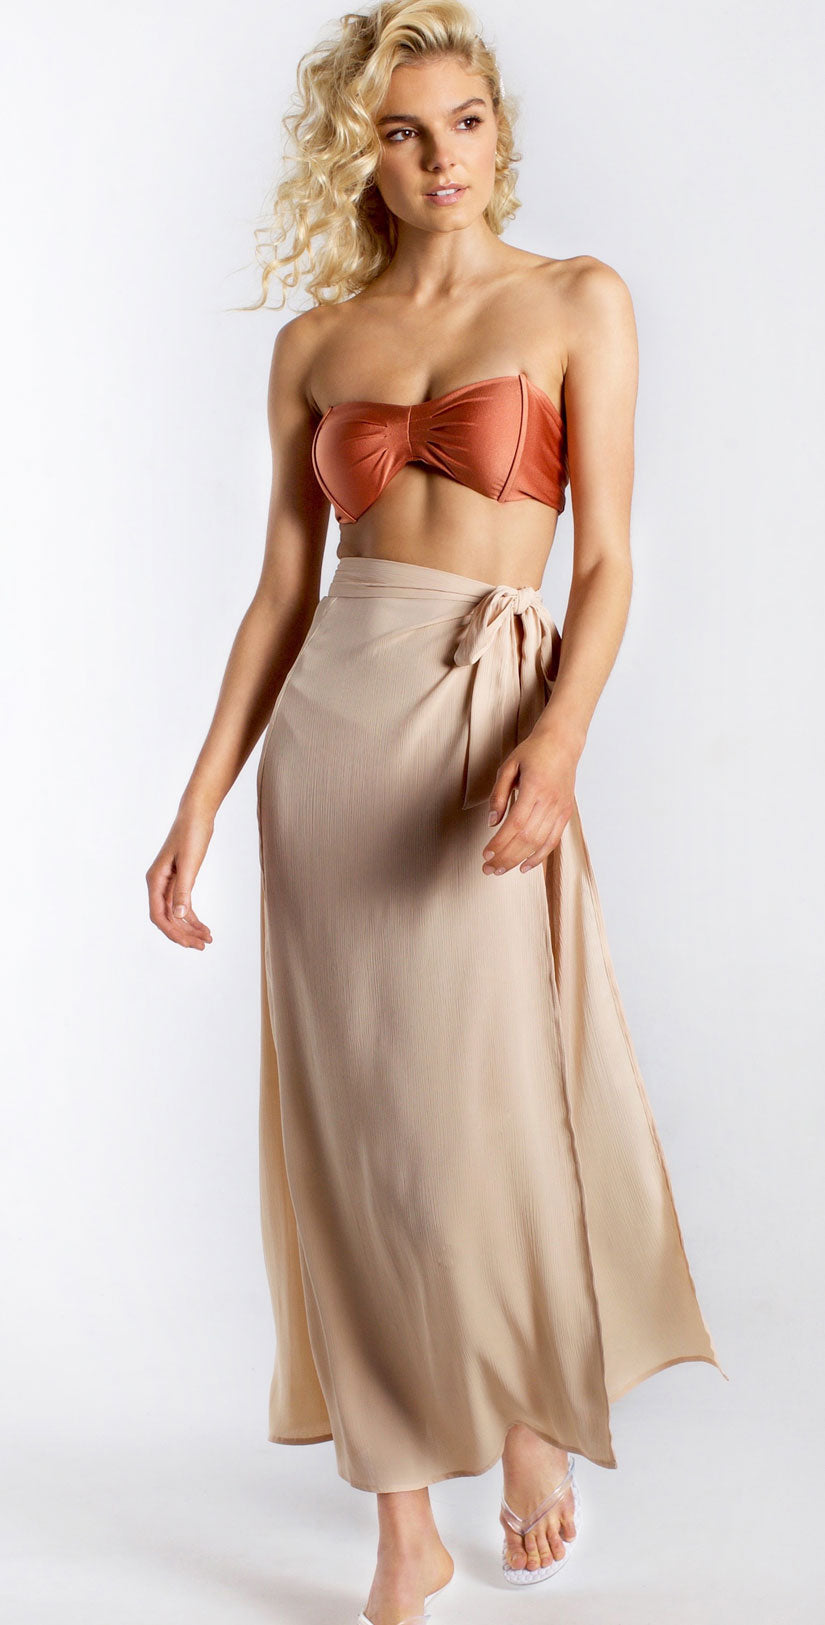 Westerly Waikiki Skirt in Nude front